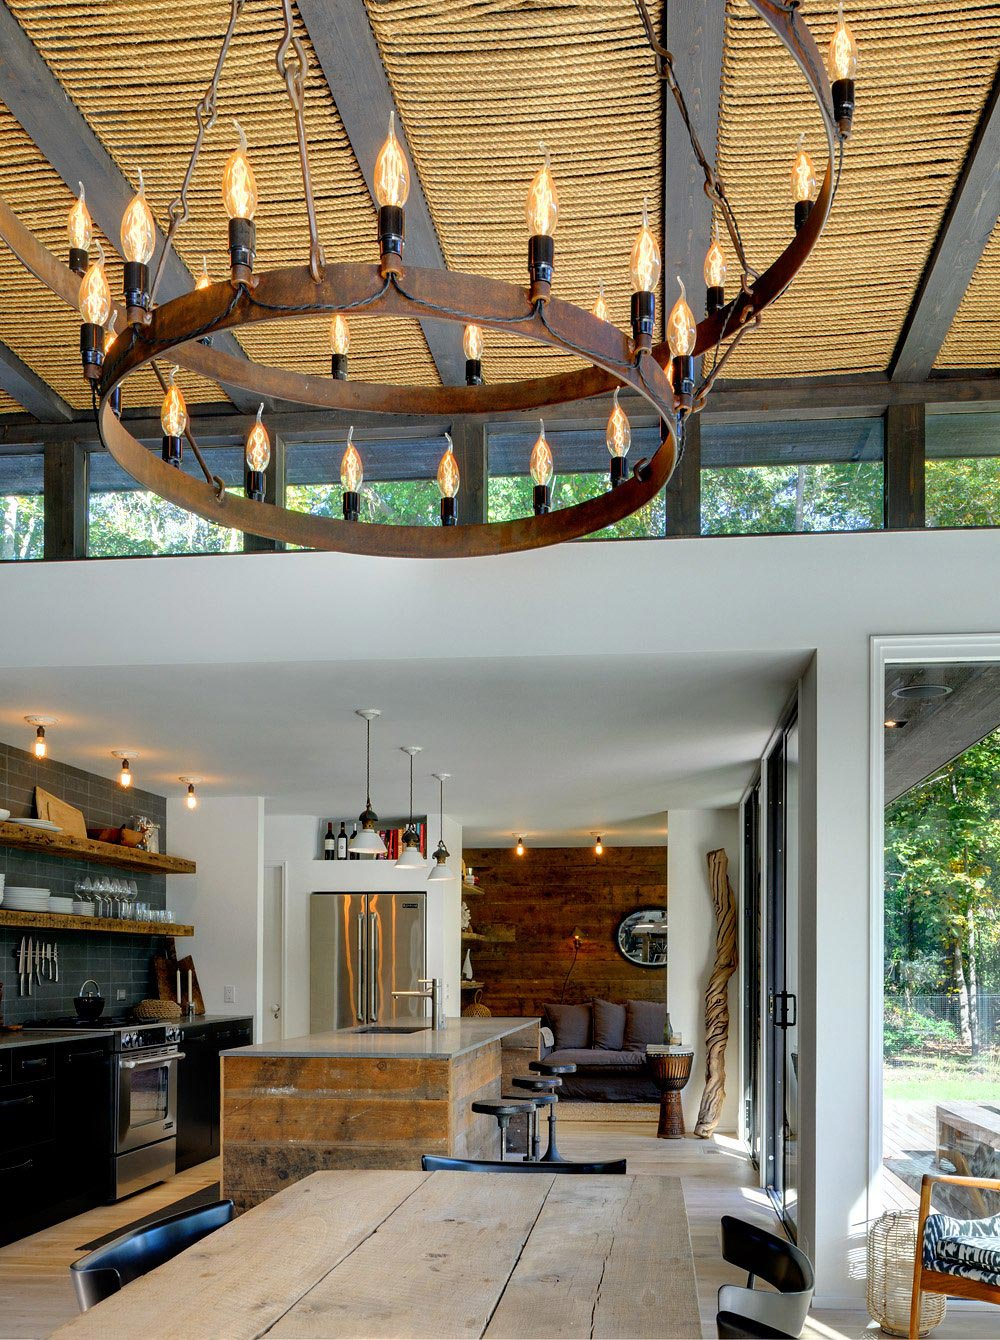 Rustic Kitchen Island, Lighting, Robins Way Residence in Amagasett, New York by Bates Masi Architects